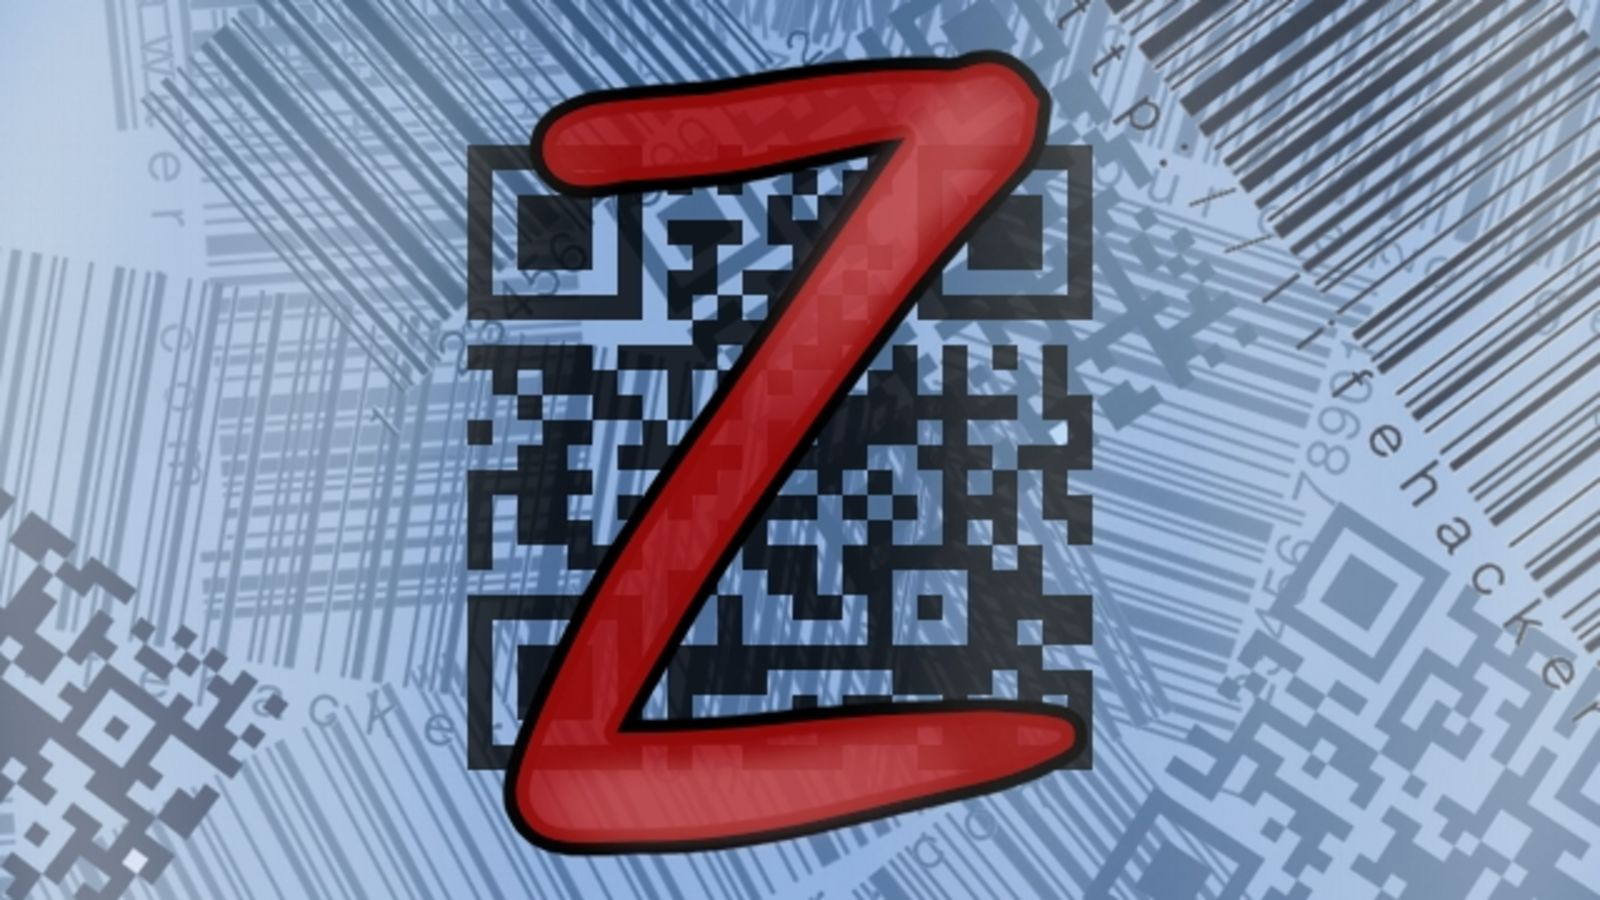 Zbar Spreadsheet with Zbar Brings Barcode And Qr Code Scanning To Your Desktop